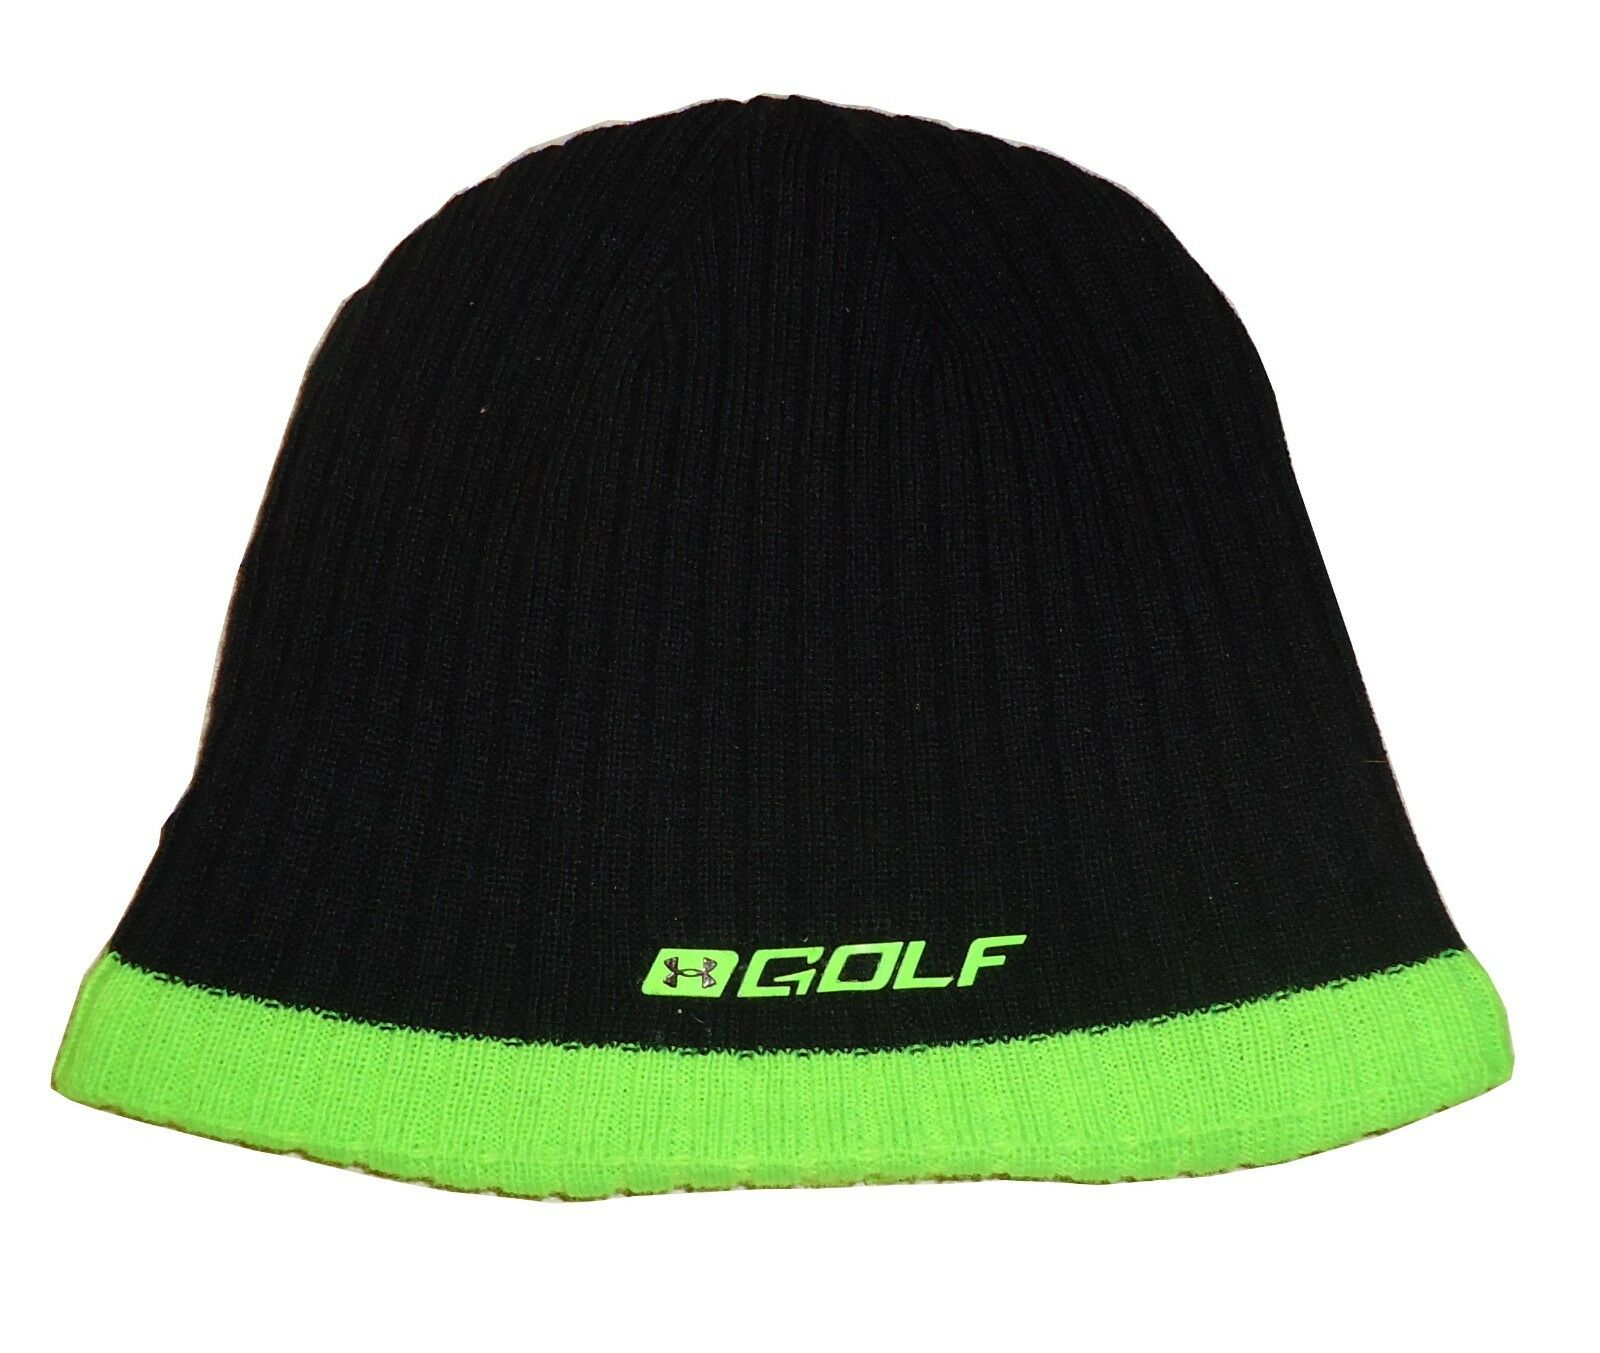 Under Armour Golf Infrared Beanie Hat